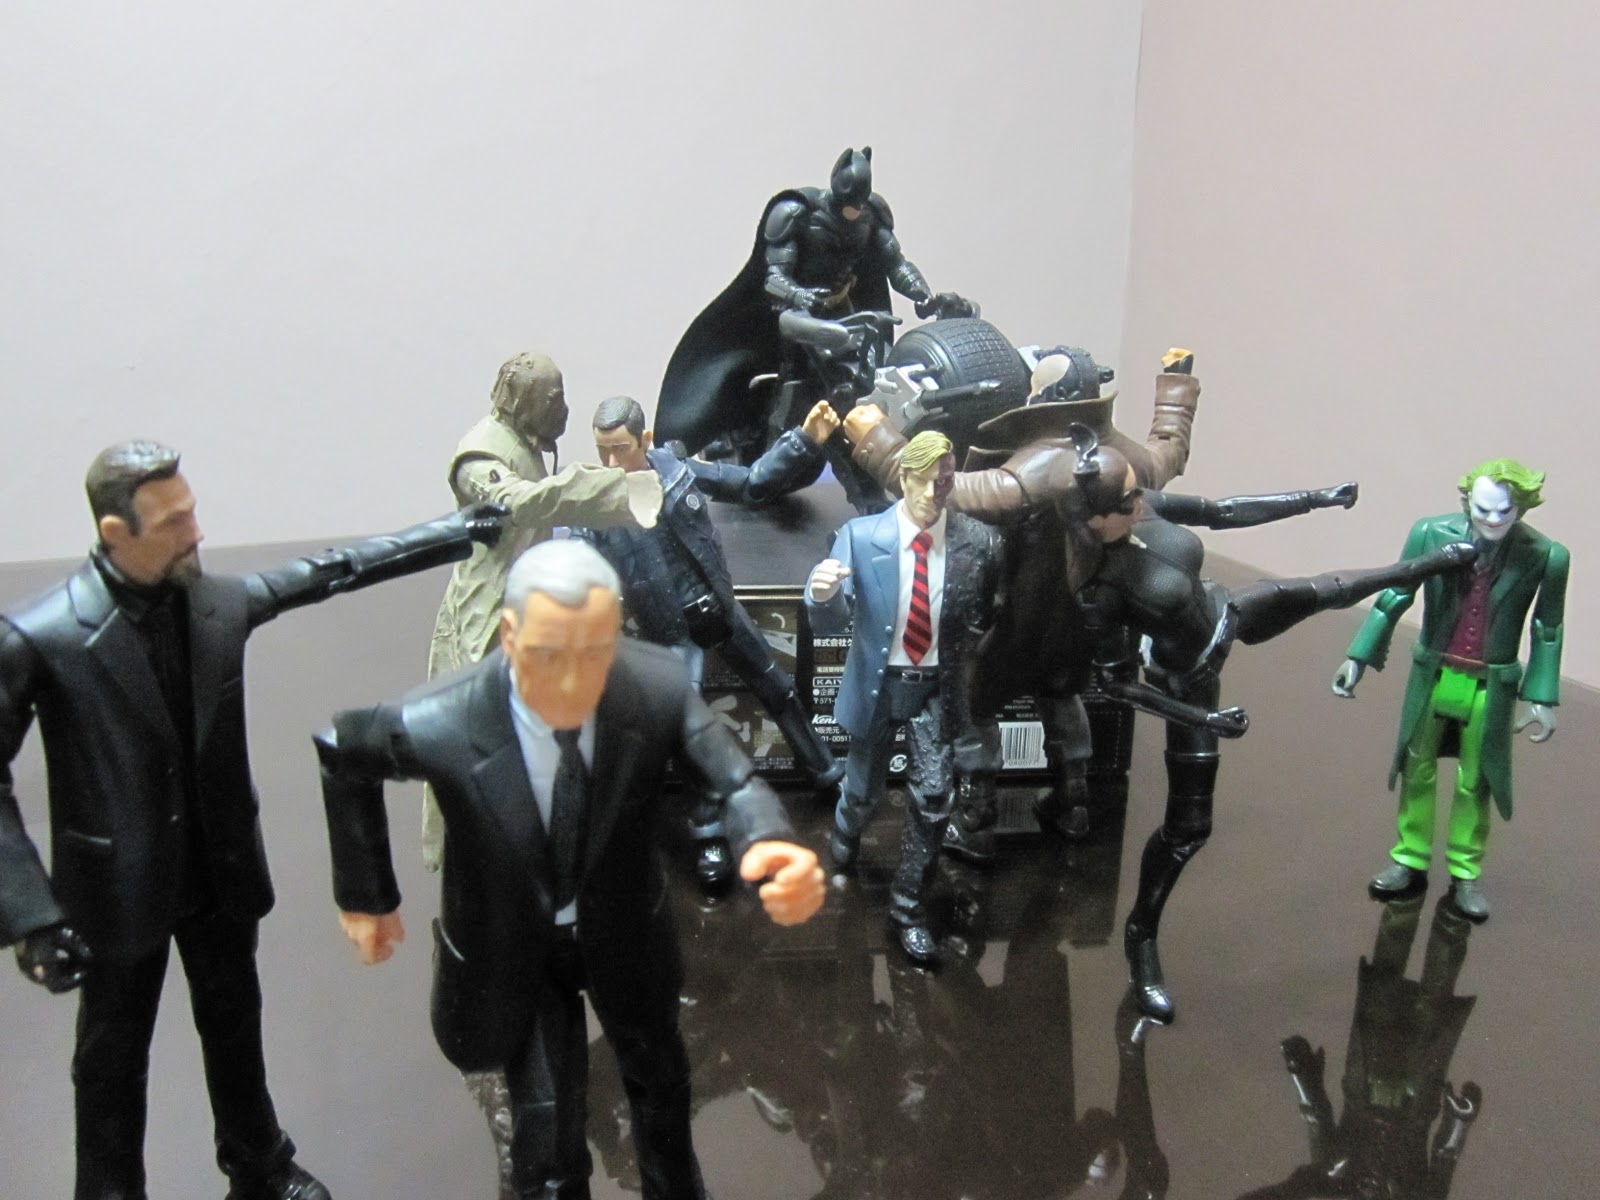 Calex Lampen Action : The dark knight rises action figure planet